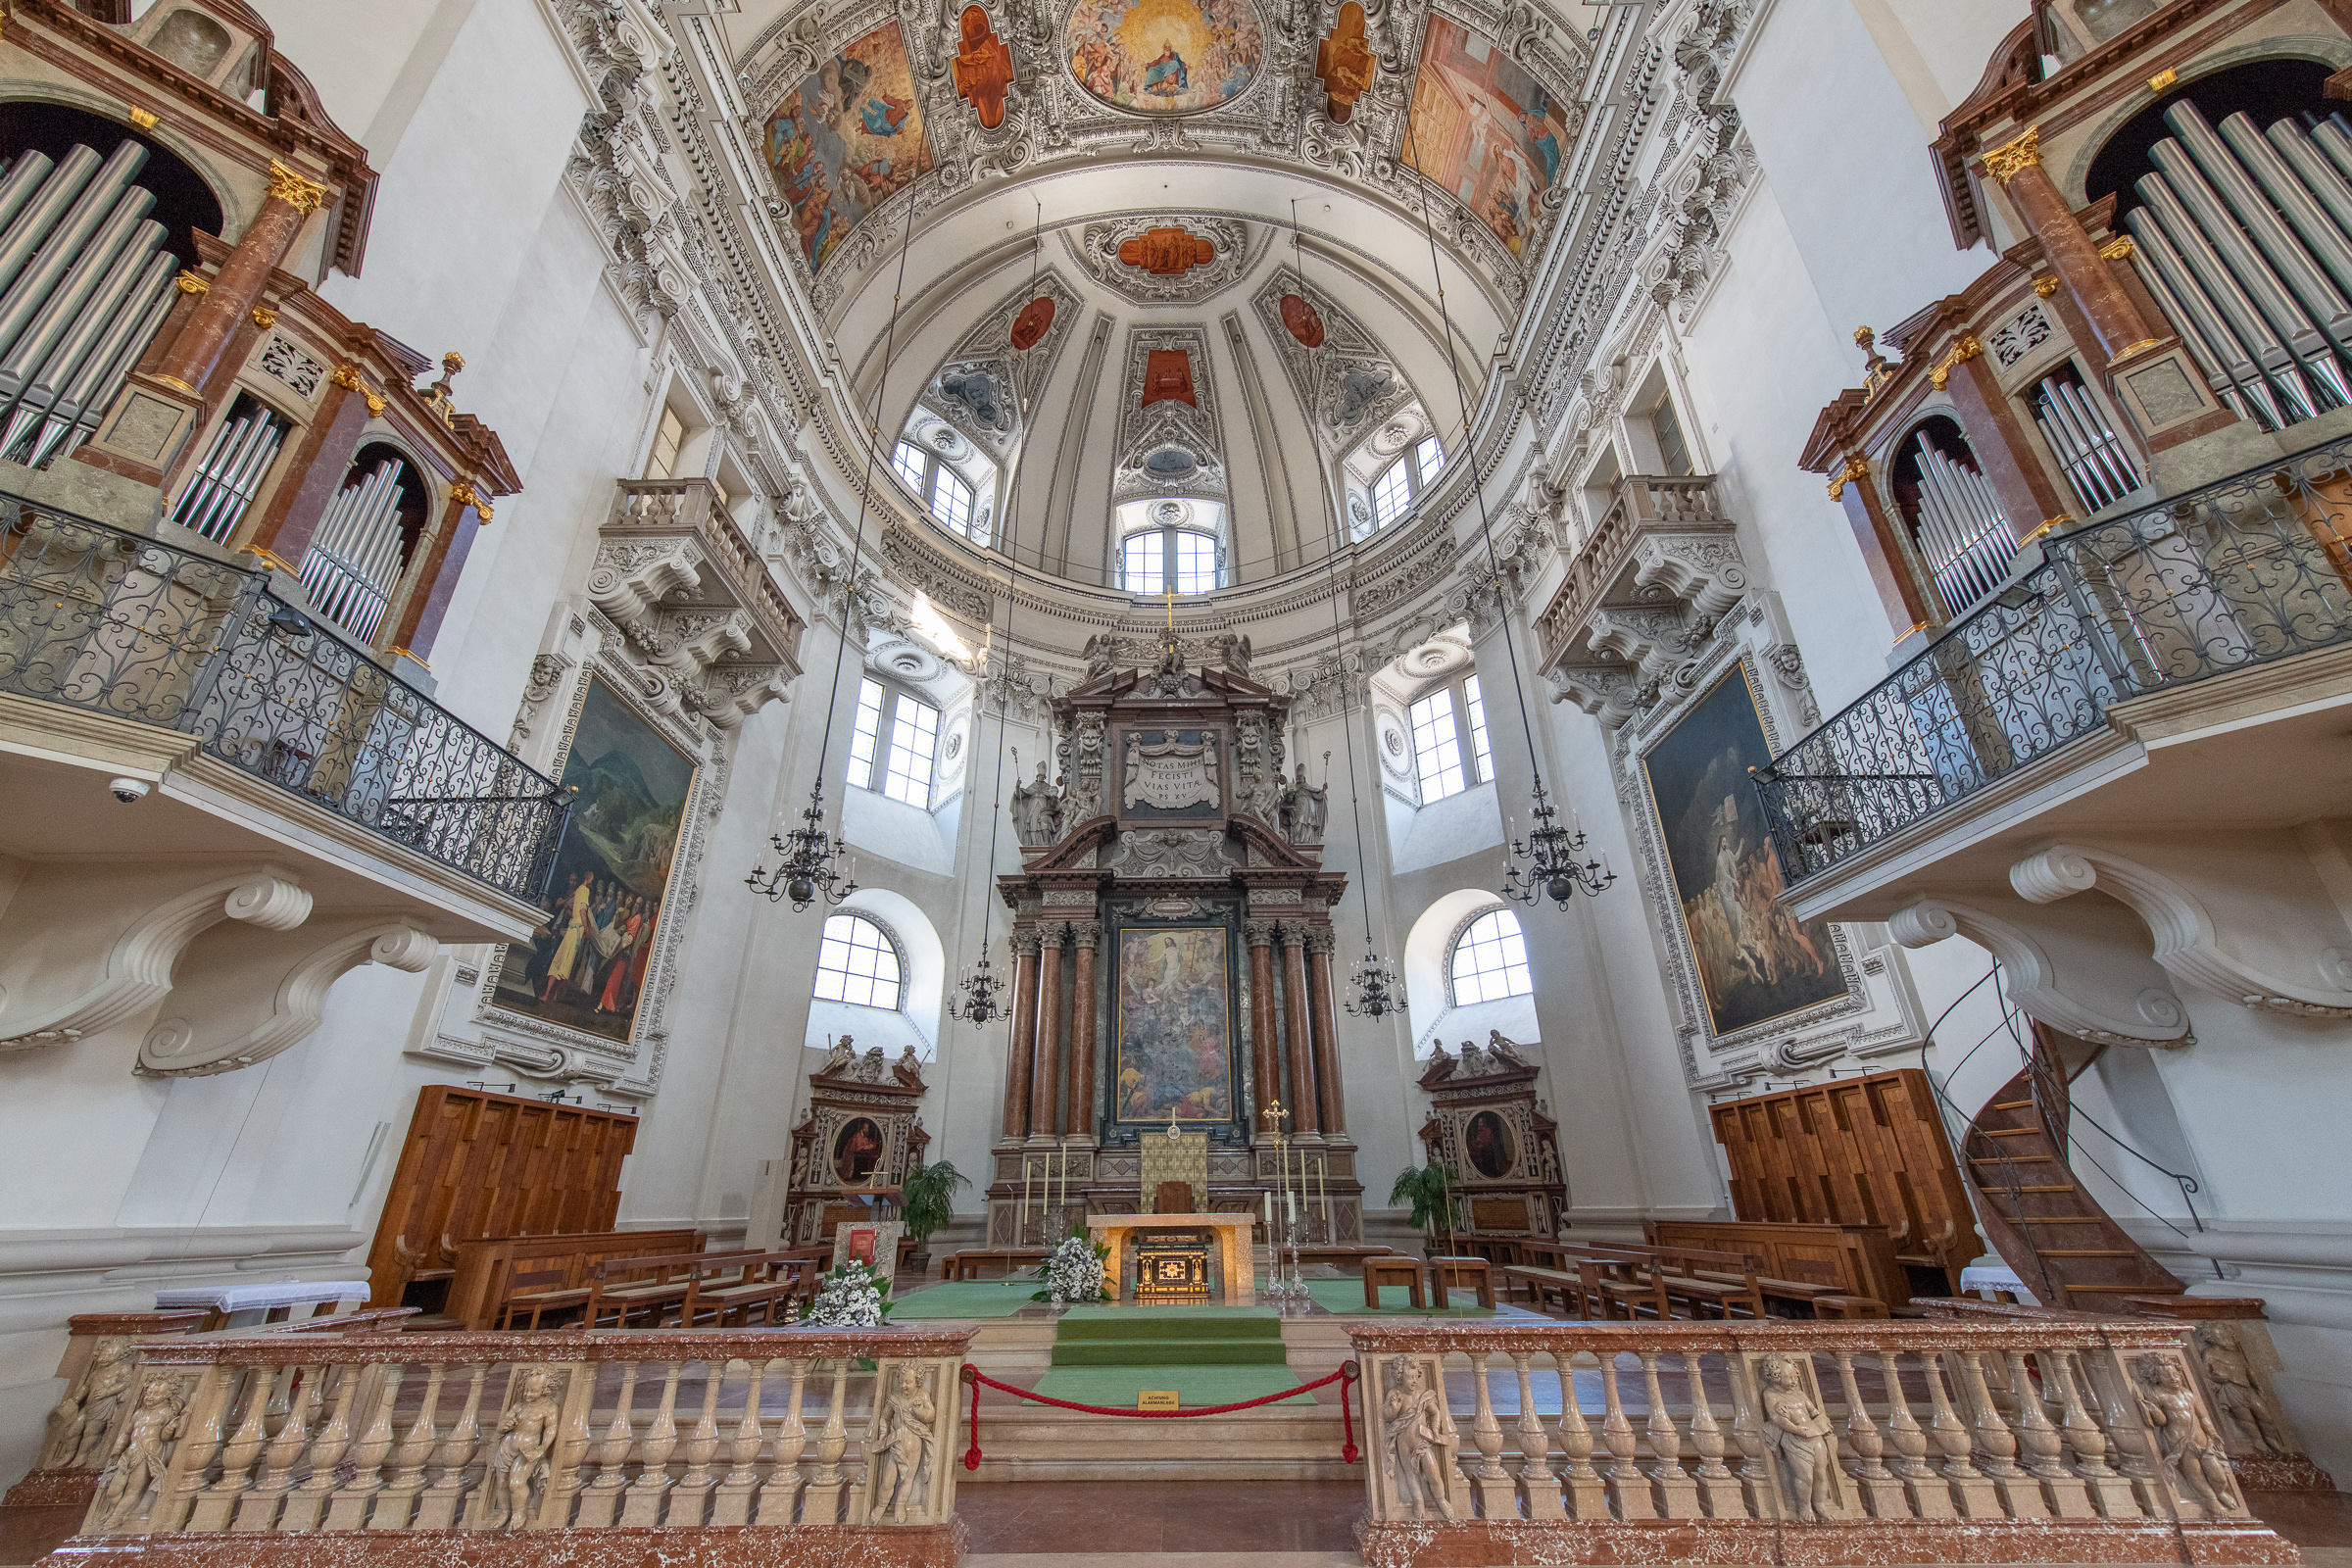 The beautiful interior of Salzburg Cathedral